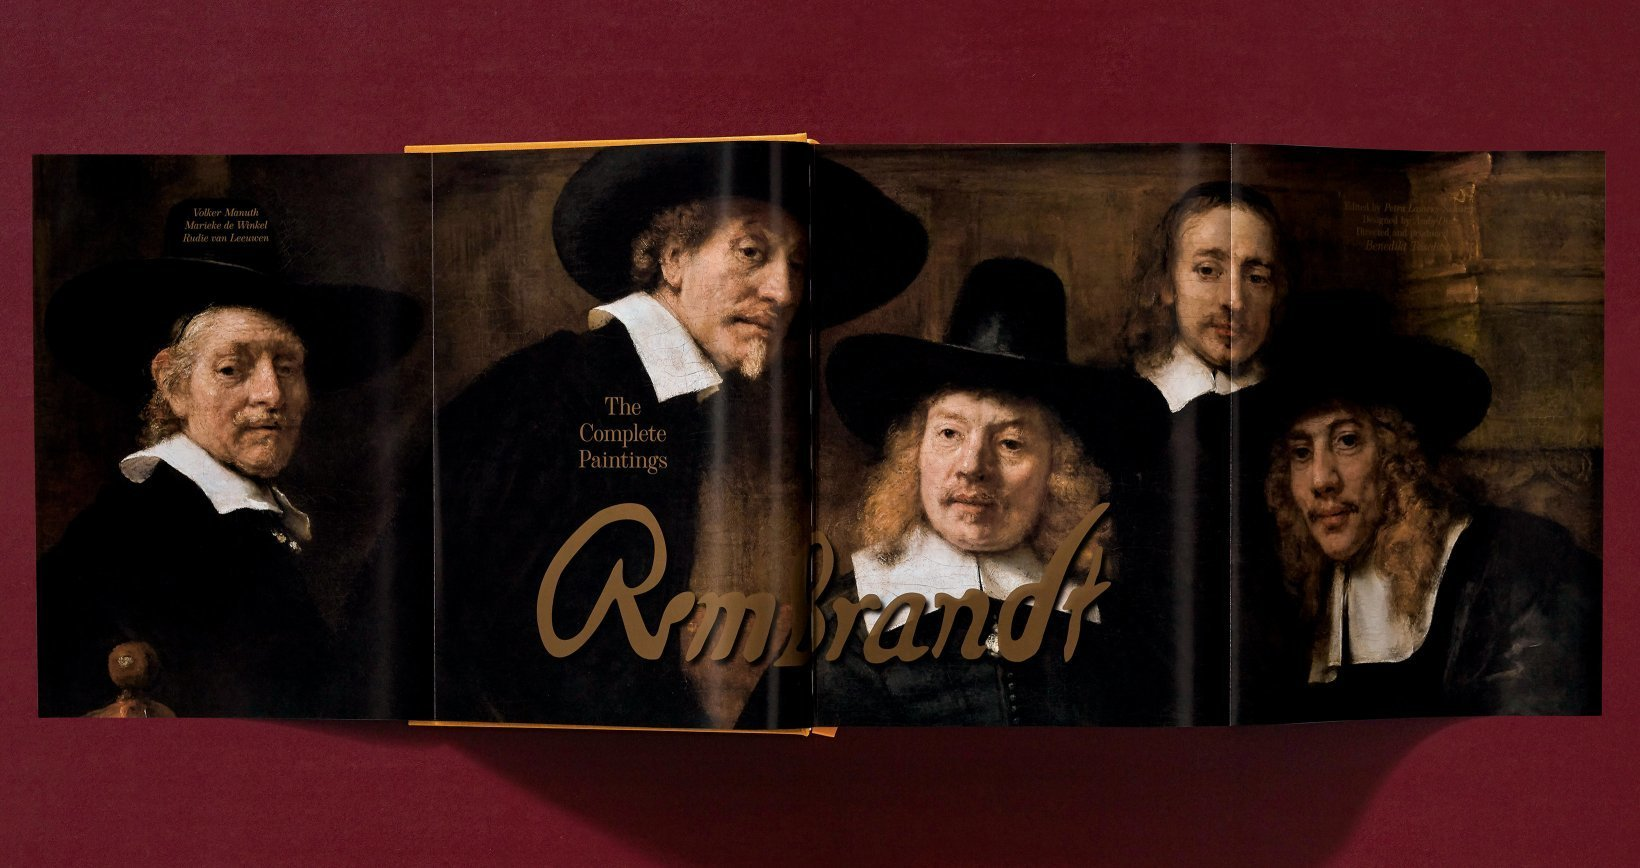 Taschen rembrandt_paintings_xl_image_005